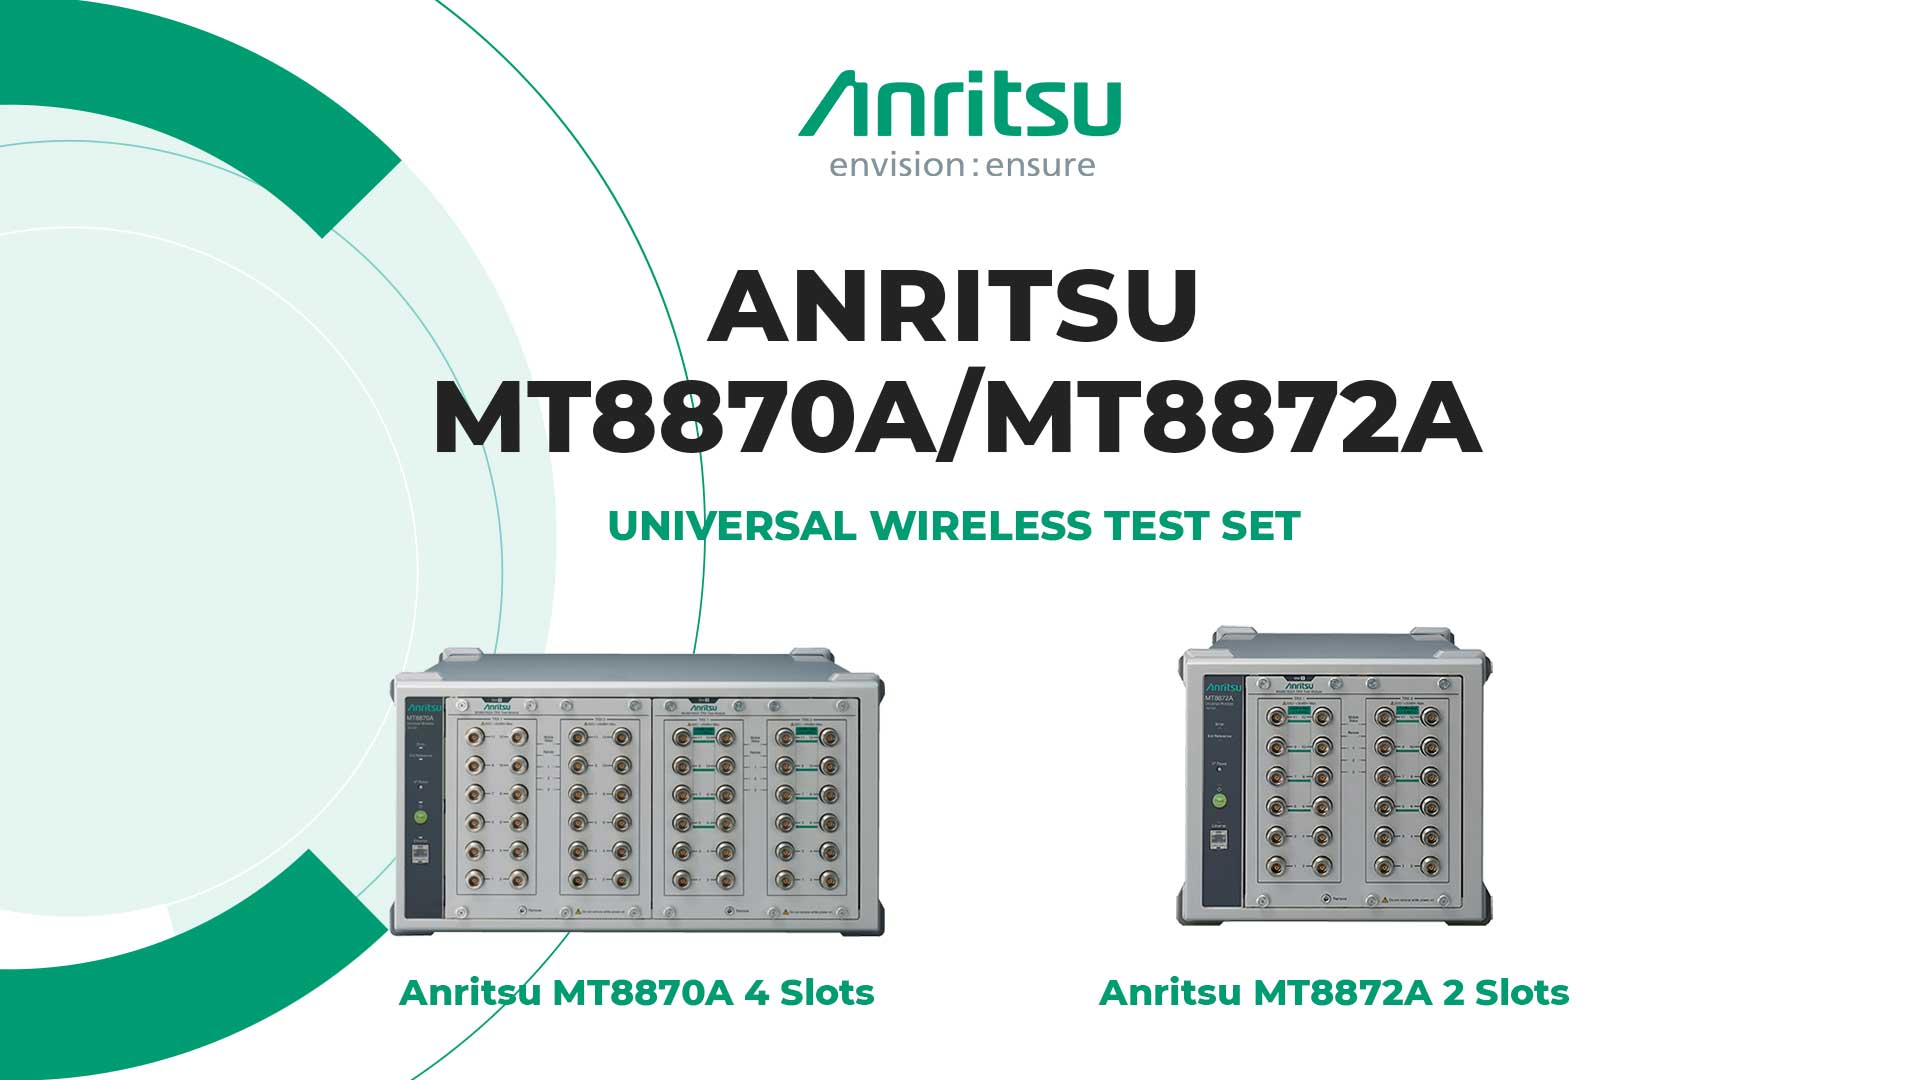 Anritsu MT8870A and MT8872A Universal Wireless Test Set